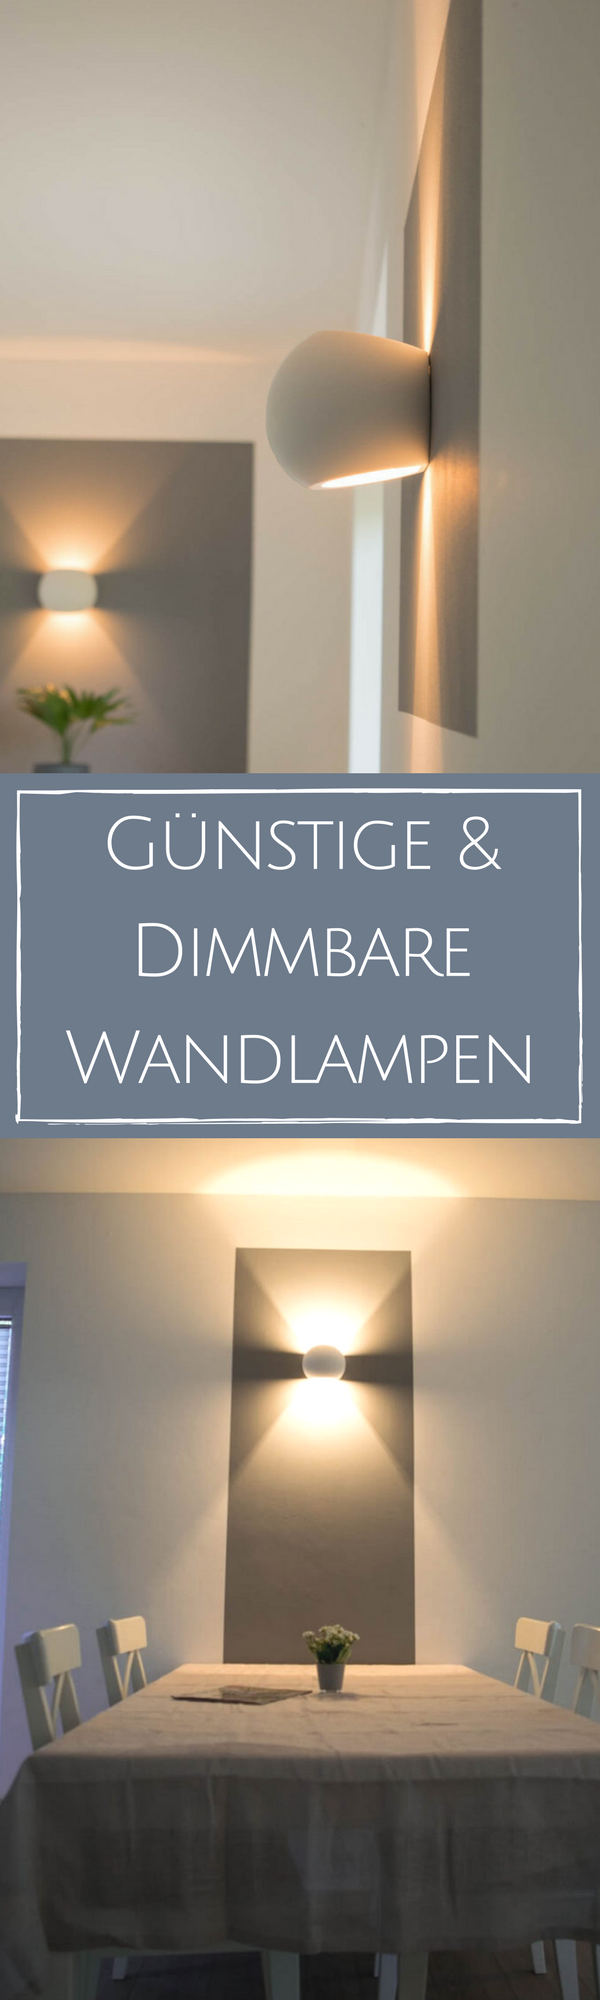 dimmbare led wandlampen unsere wandleuchten f rs wohnzimmer wandlampen da sein und led. Black Bedroom Furniture Sets. Home Design Ideas